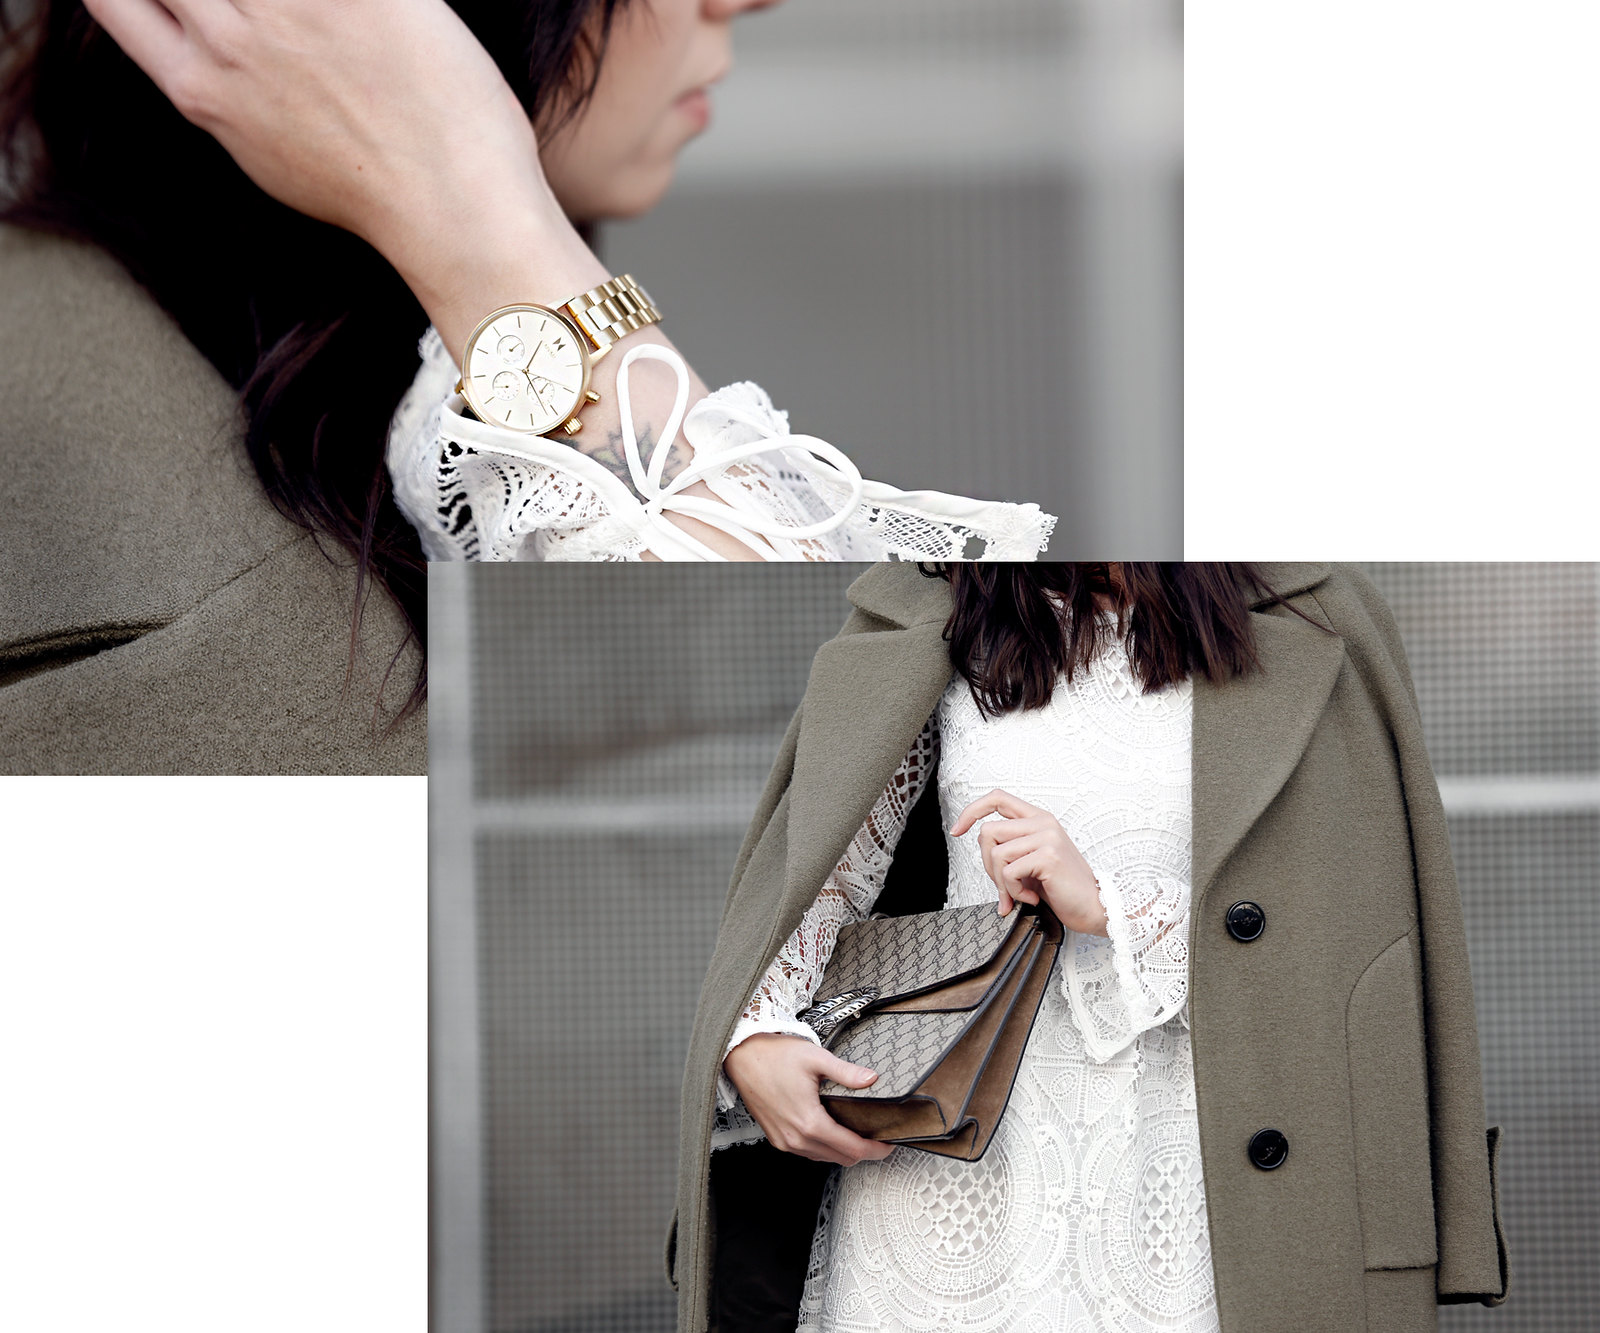 about you coat khaki wool white lace dress vila sneakers sacha gucci dionysus bag mvmt watch gold ootd styling lookbook cats & dogs modeblog ricarda schernus fashionblogger berlin düsseldorf 2